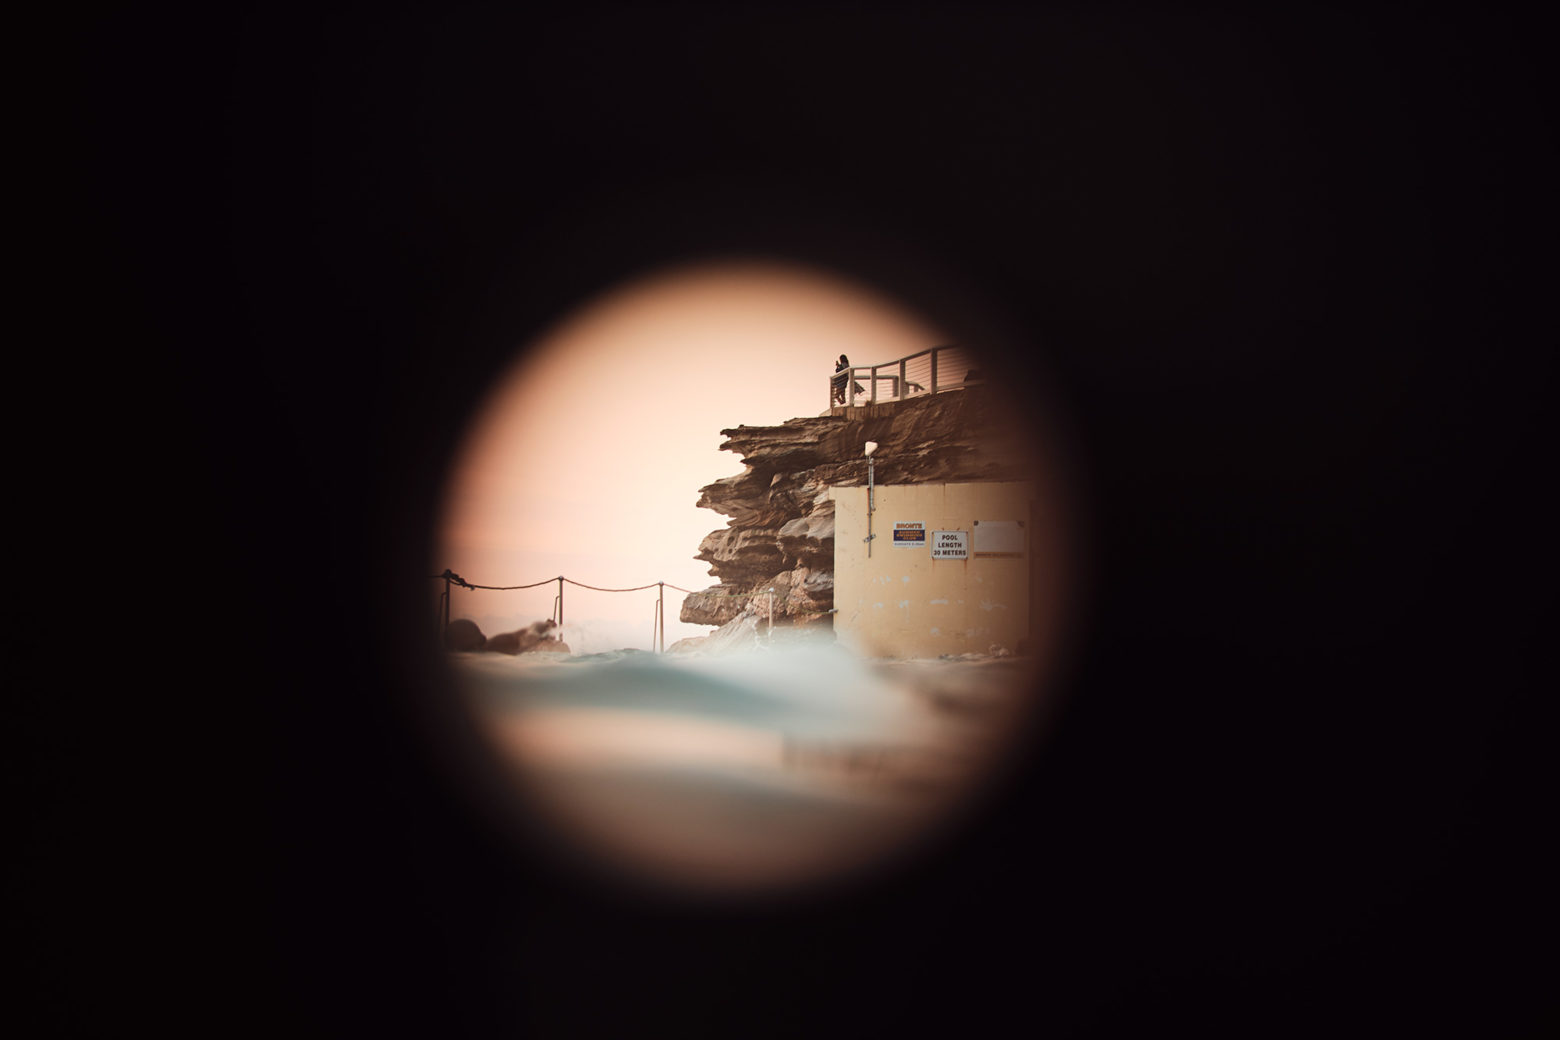 Looking through a hole, at Bronte